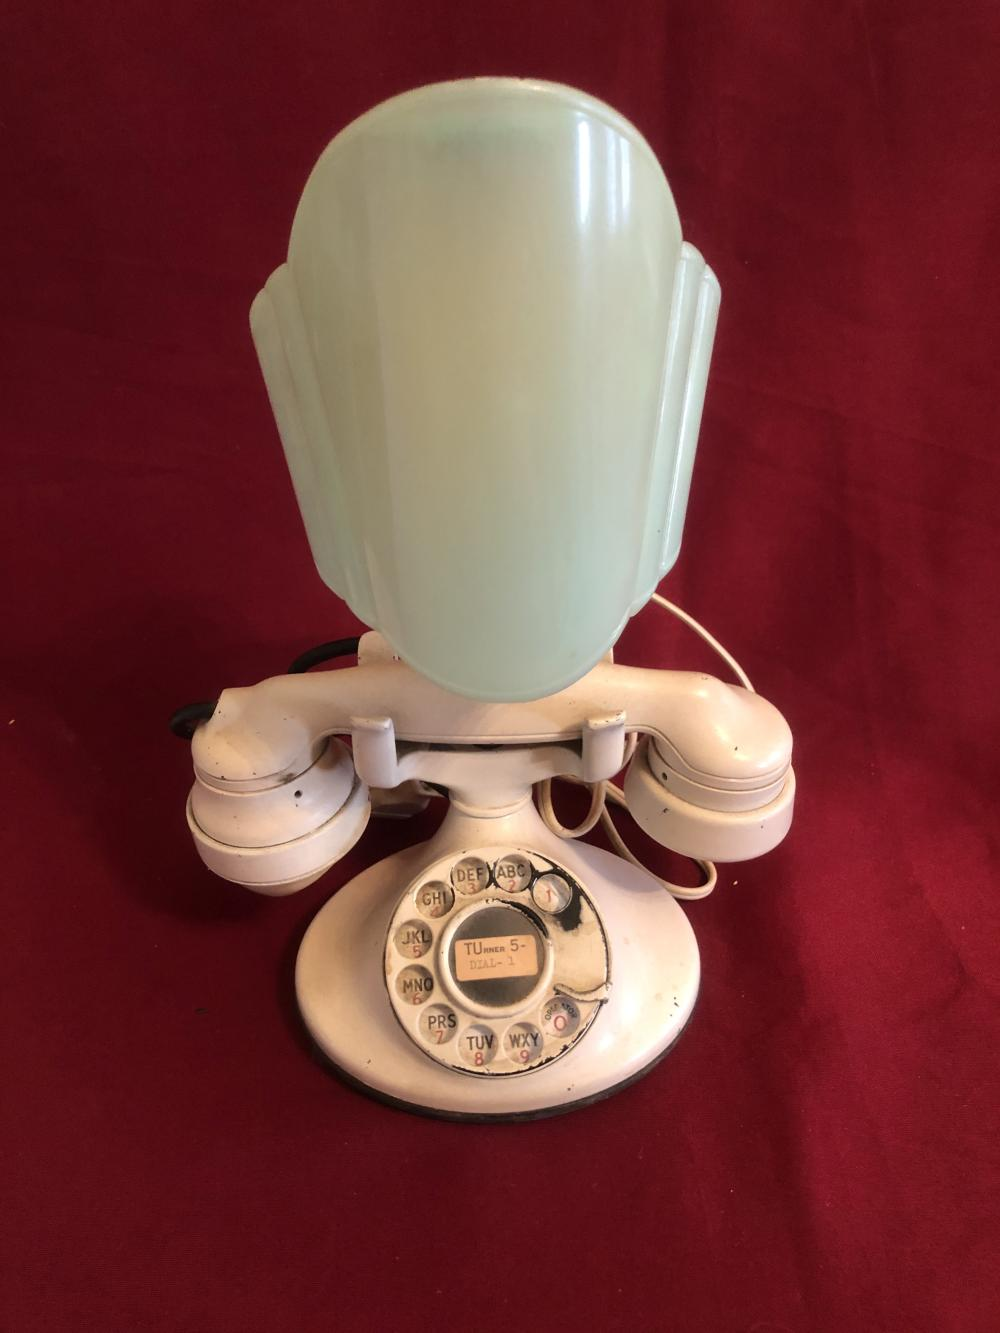 Antique telephone with light